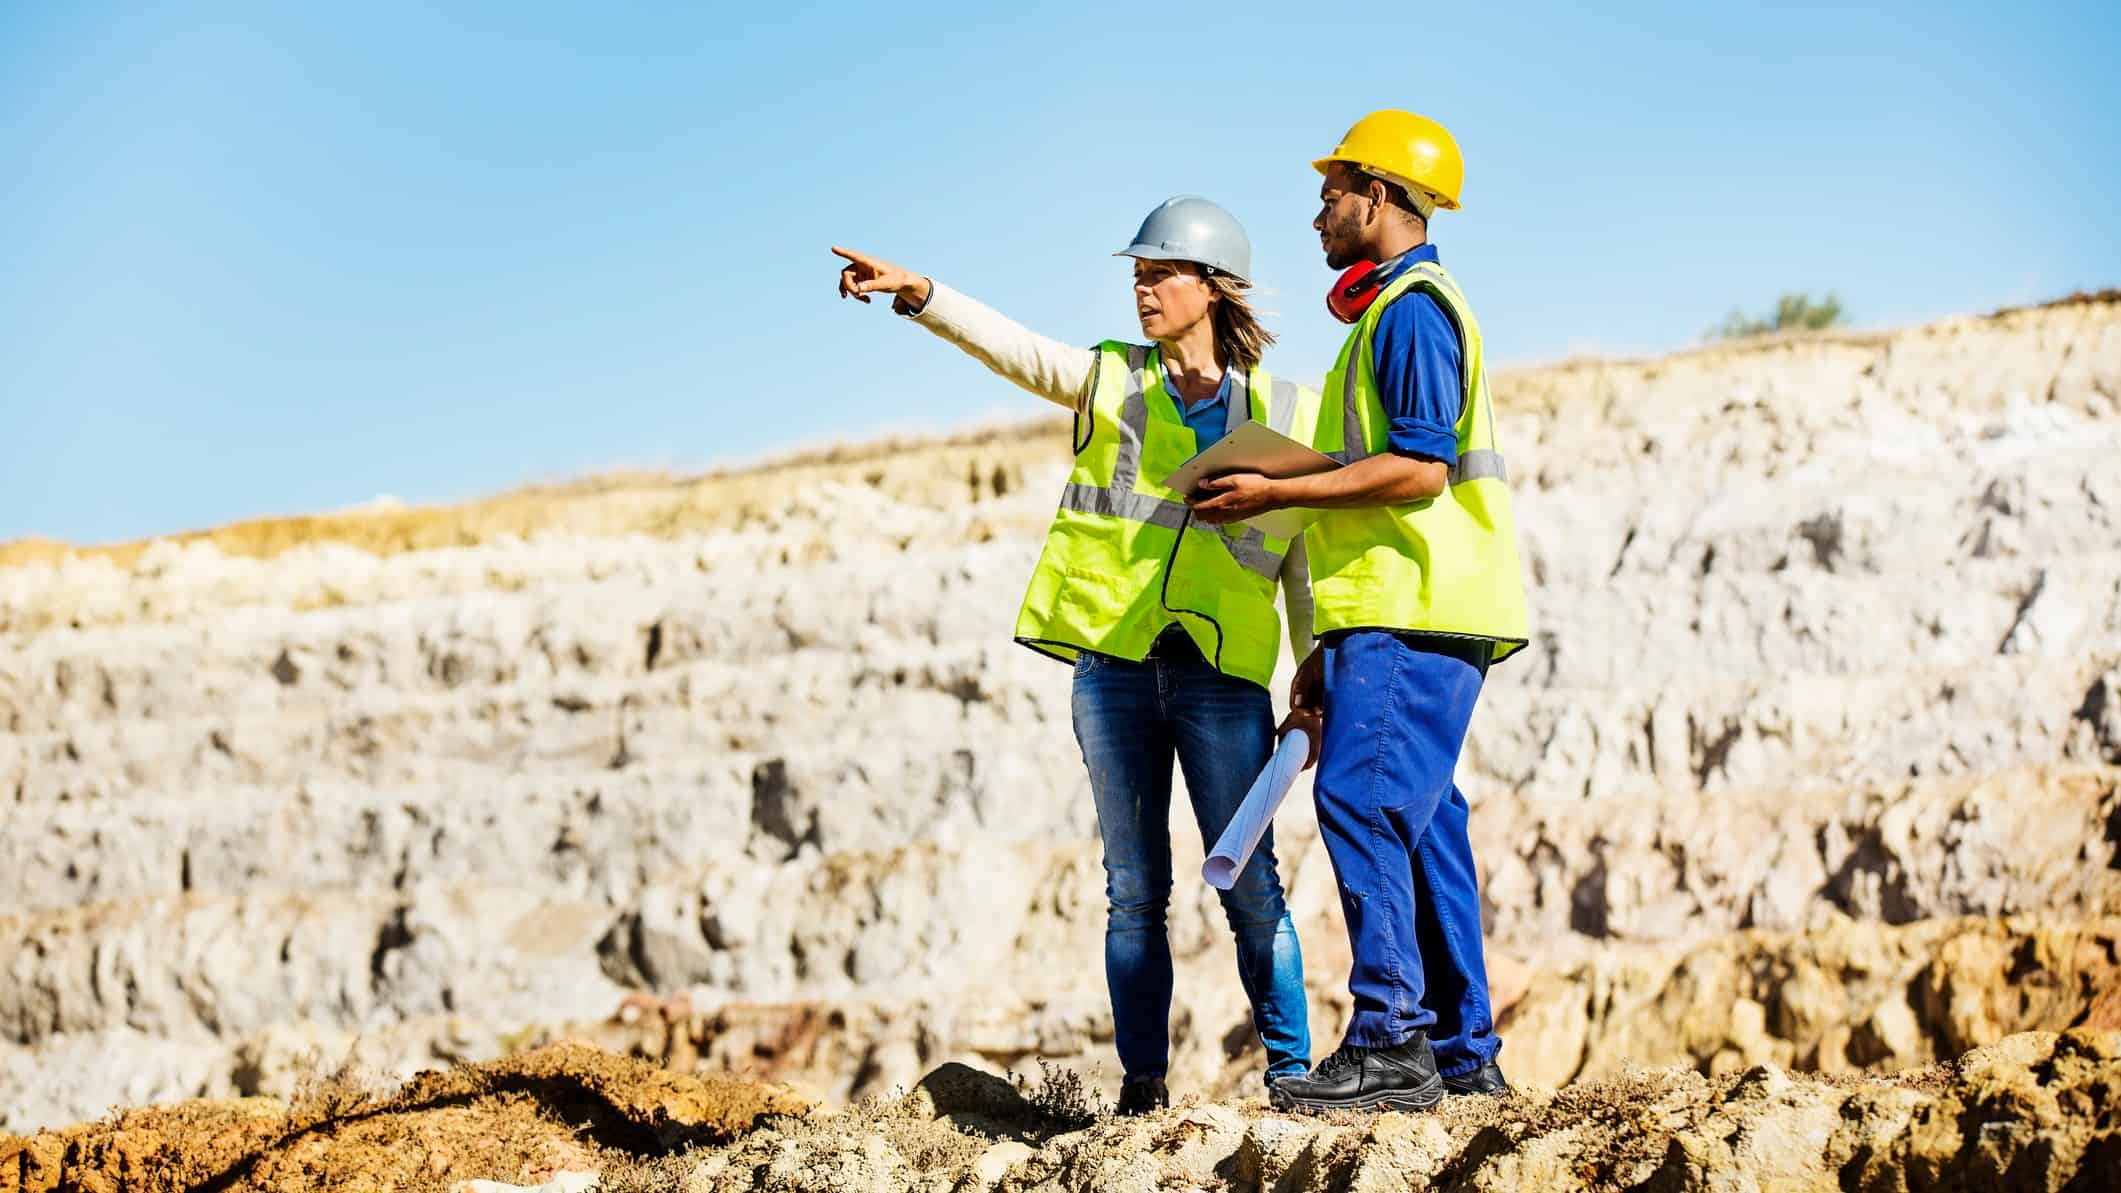 Commodities premium ASX shares Female miner and male miner stand in open mine pit surveying the area